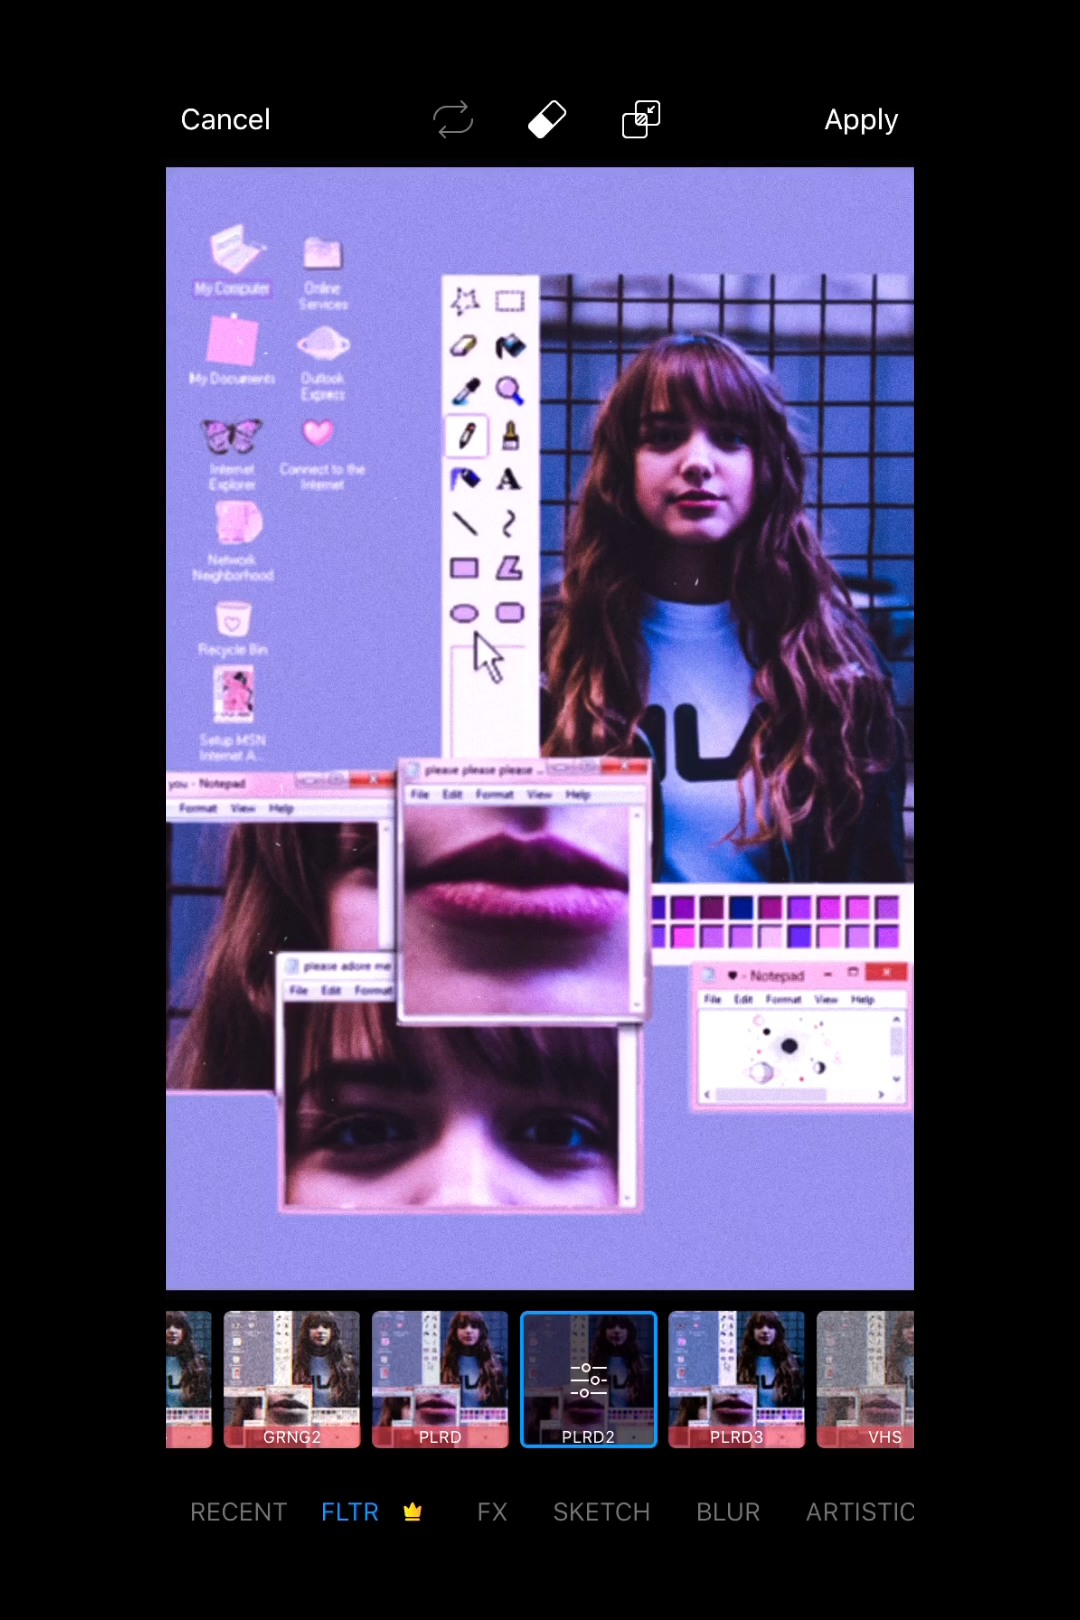 How To Create A Chunky Computer Aesthetic Edit With PicsArt Stickers 💻✨